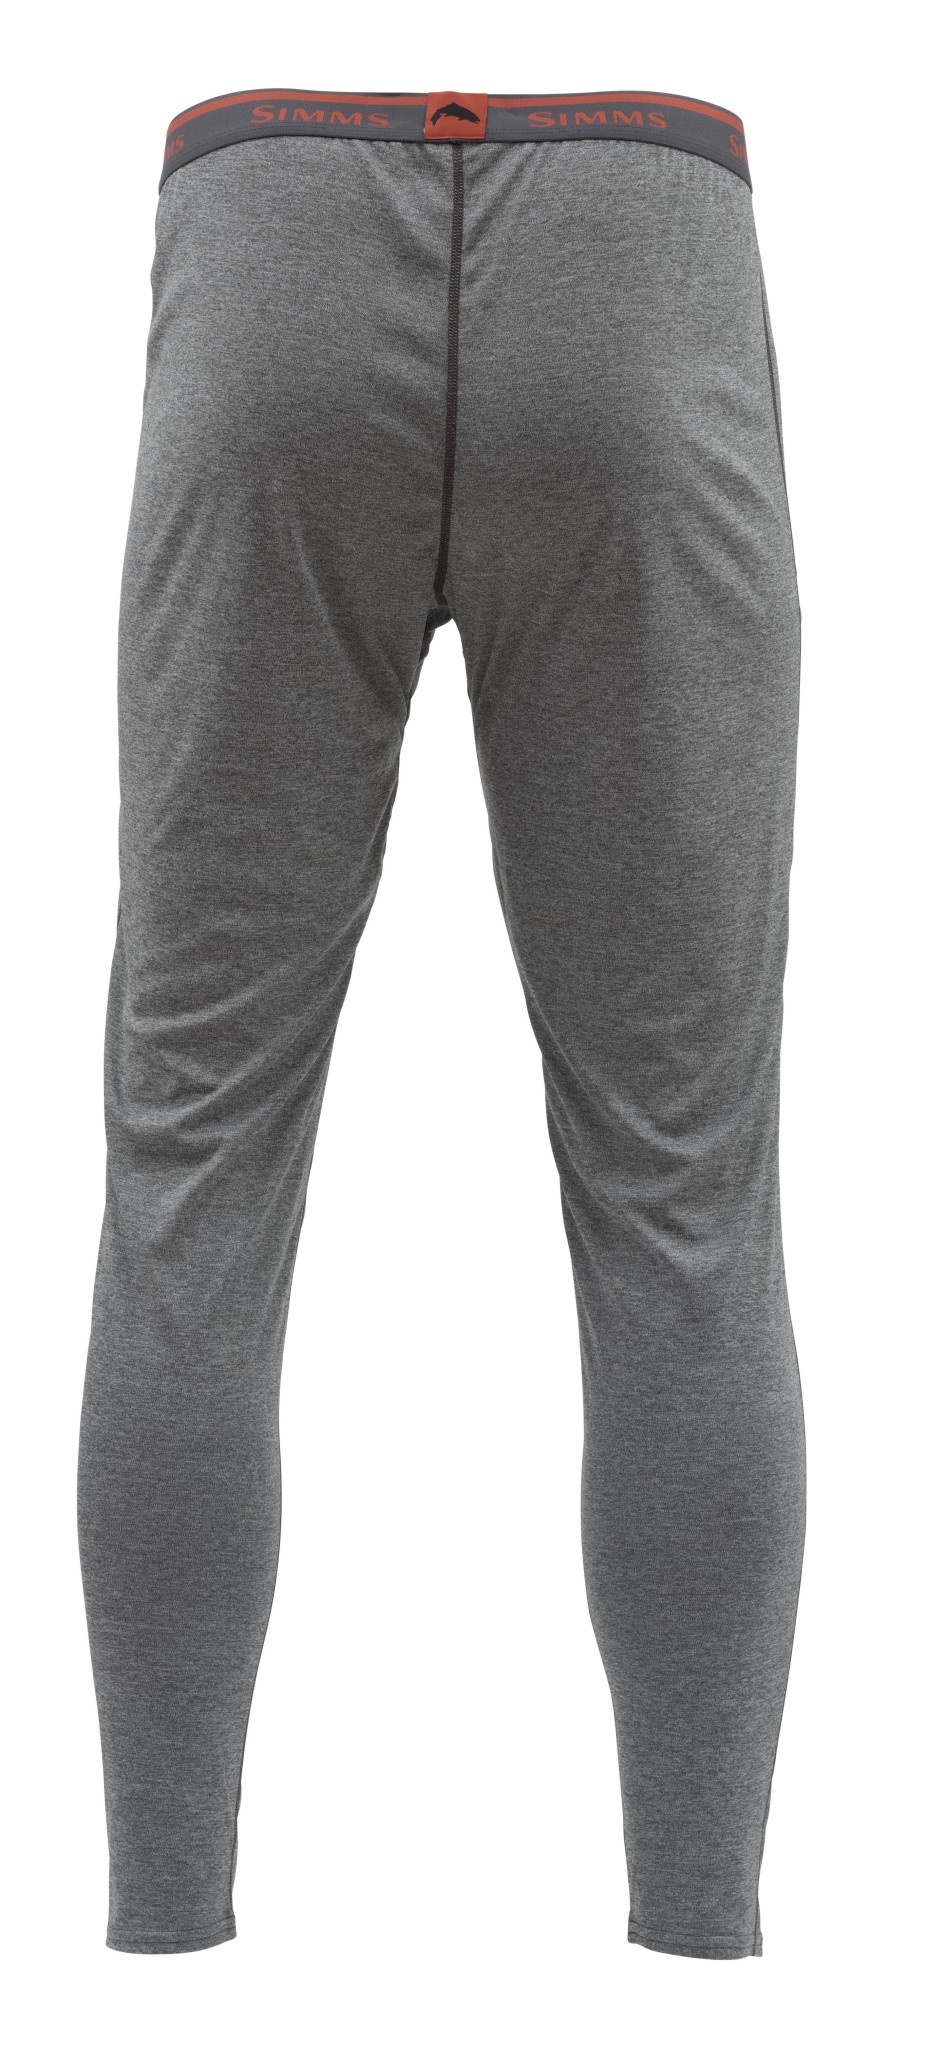 Simms Simms Lightweight Core Bottom